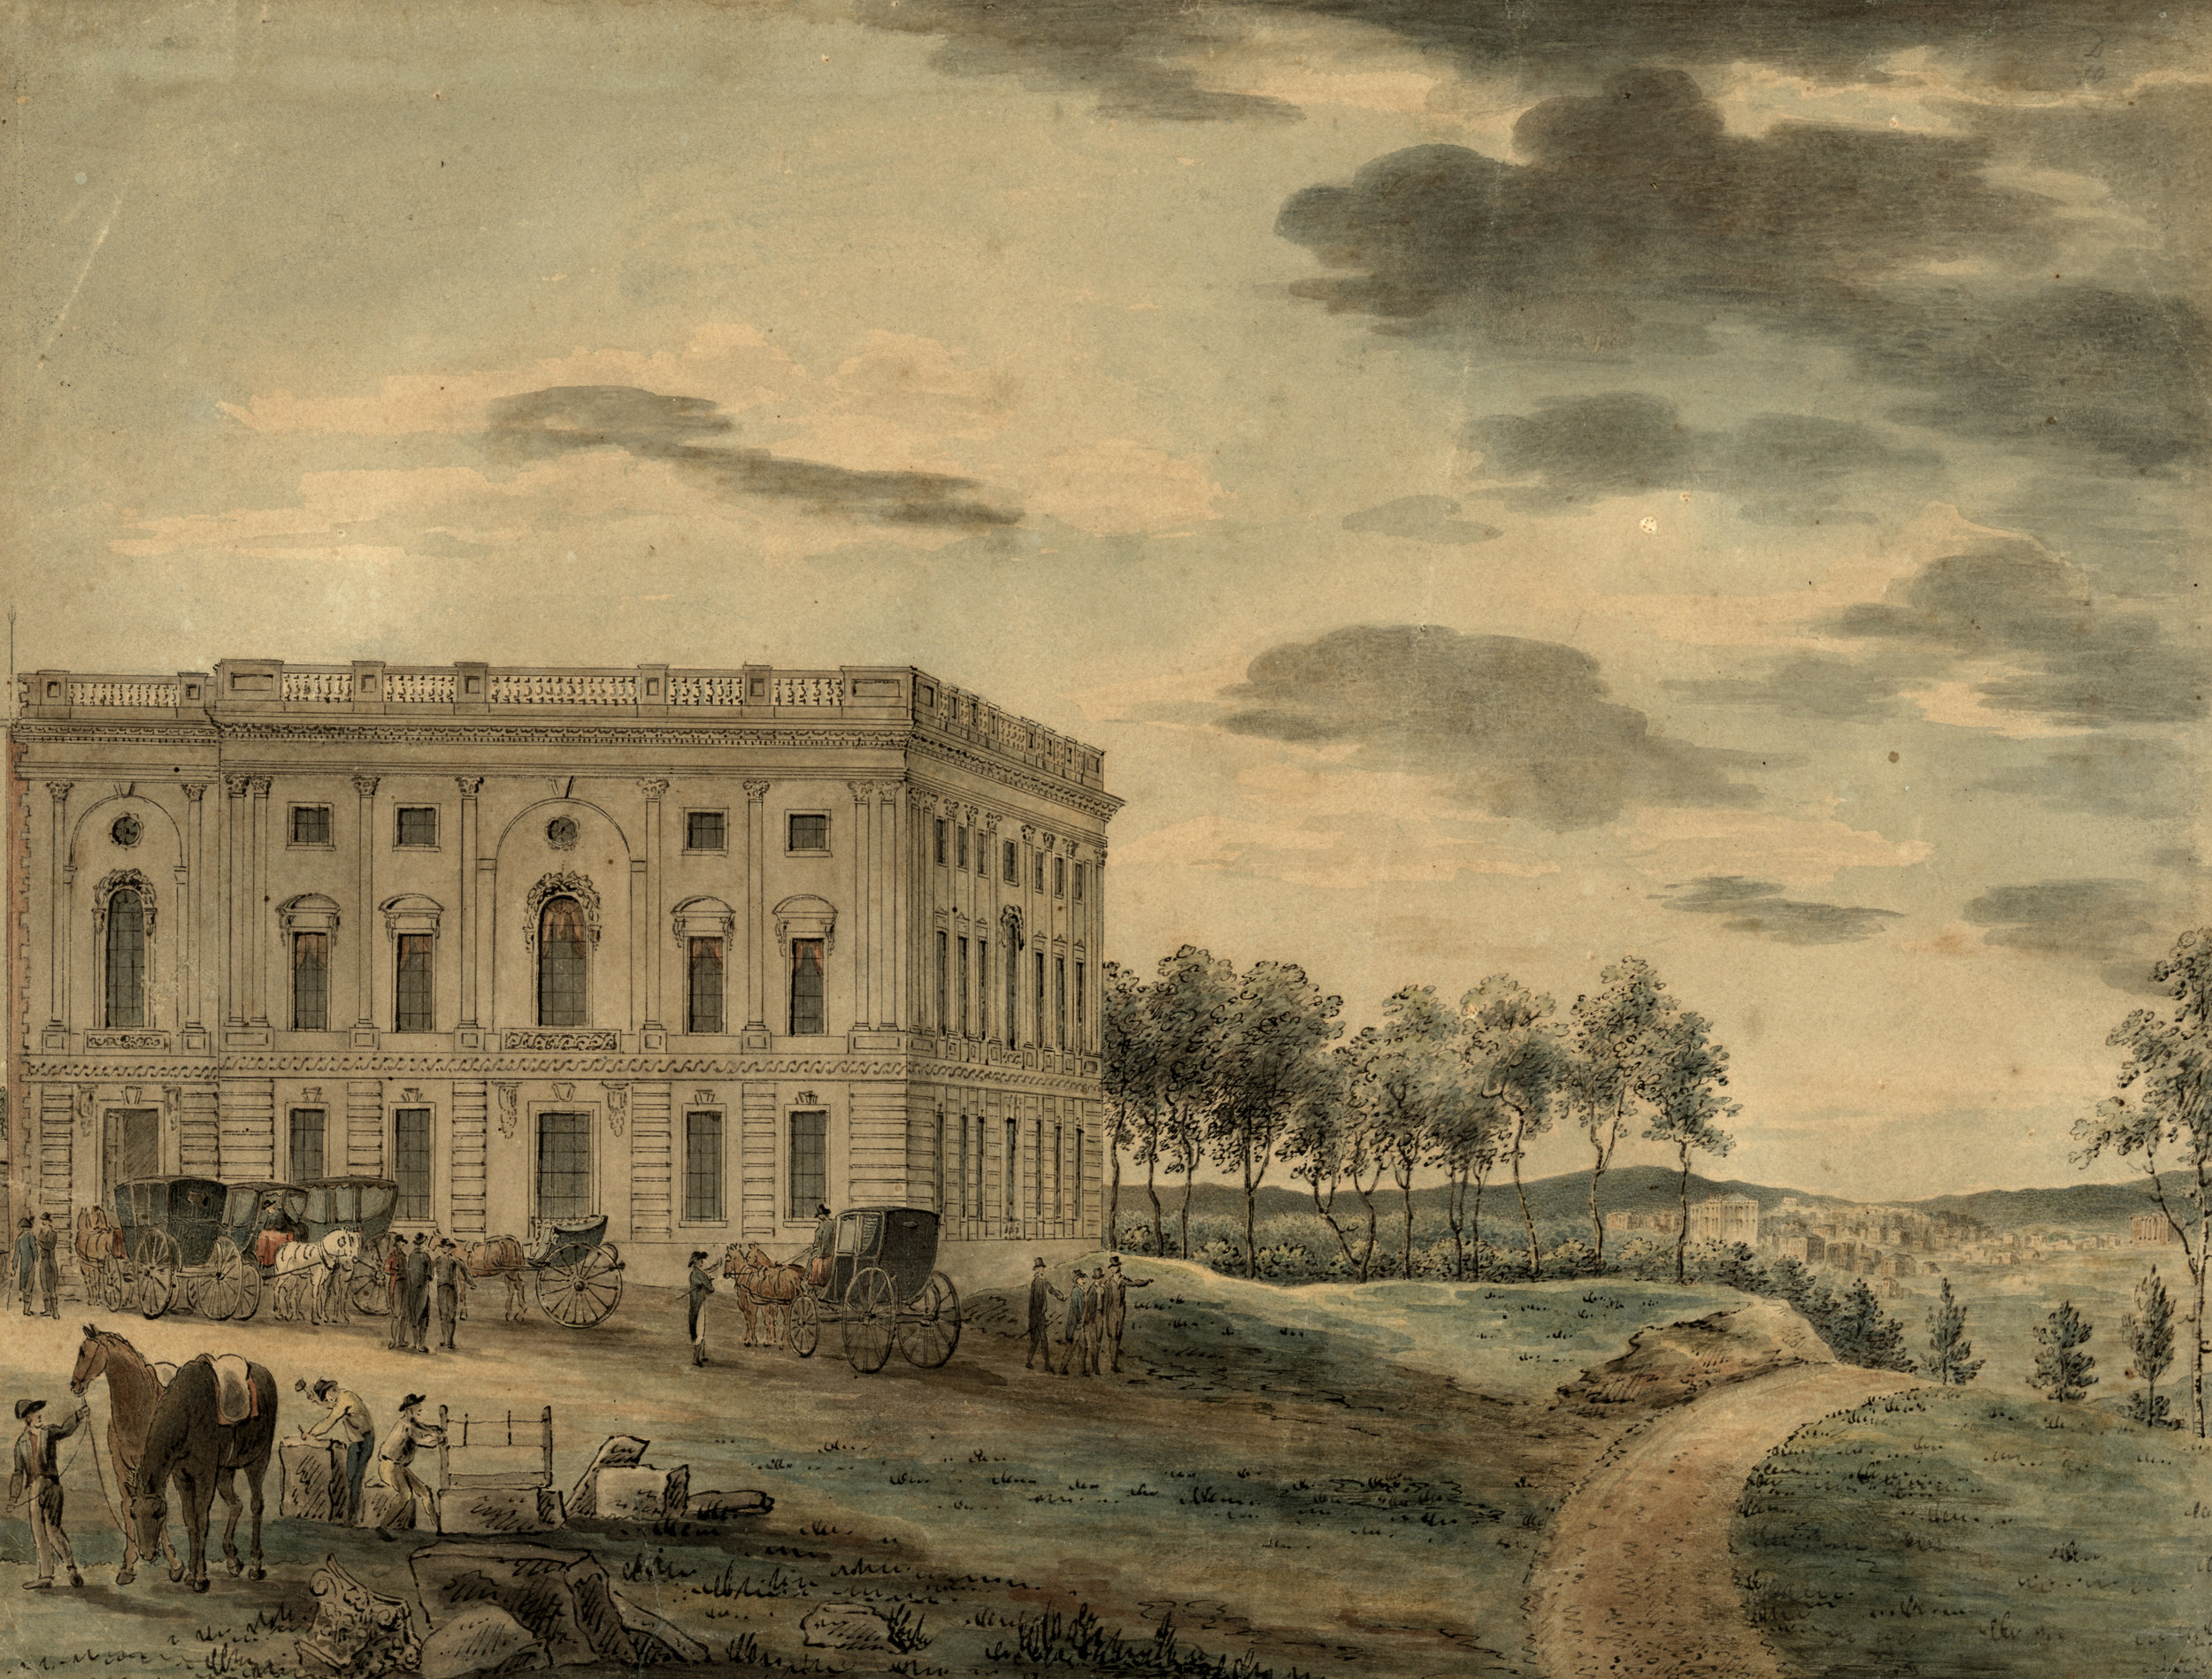 """From the Library of Congress: """"This famous watercolor view by William Birch shows the only section of the Capitol that had been completed when the government moved to Washington in 1800. Workmen are still cutting stones in the left foreground, and the city can be seen in the distance on the right."""""""